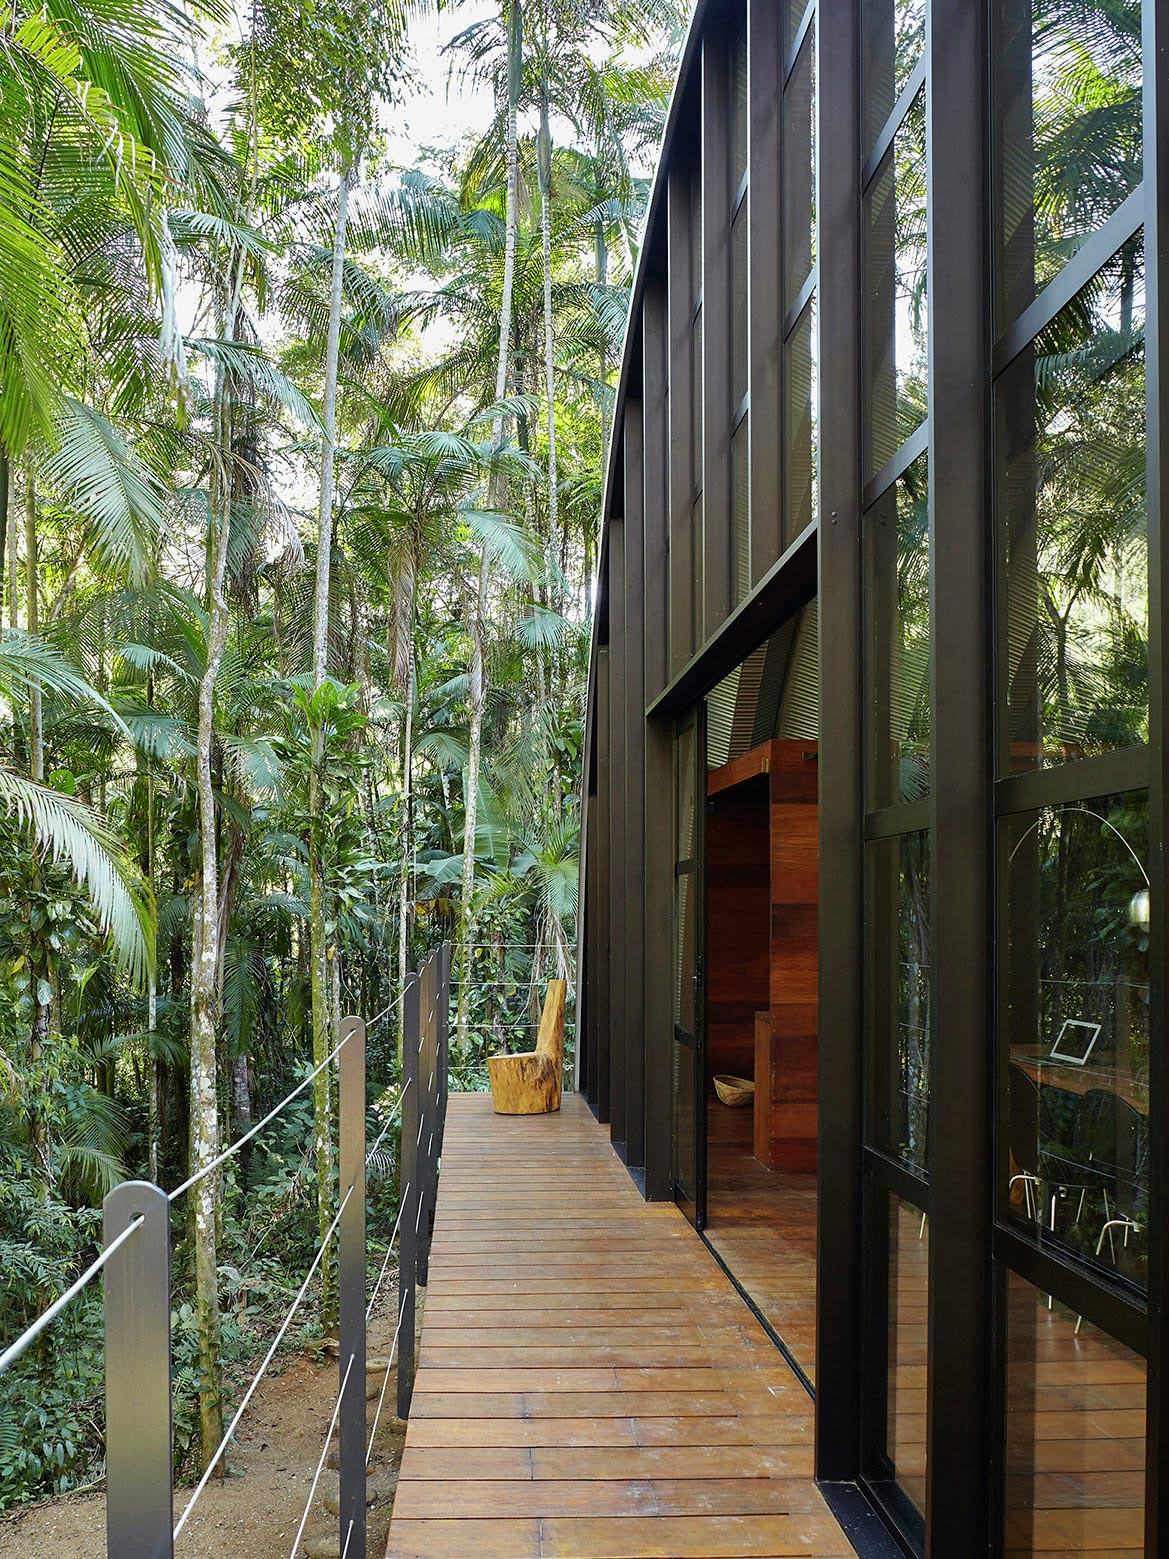 ARCA-home-in-the-middle-of-the-Brazilian-Atlantic-Forest-by-Atelier-Marko-Brajovic-06